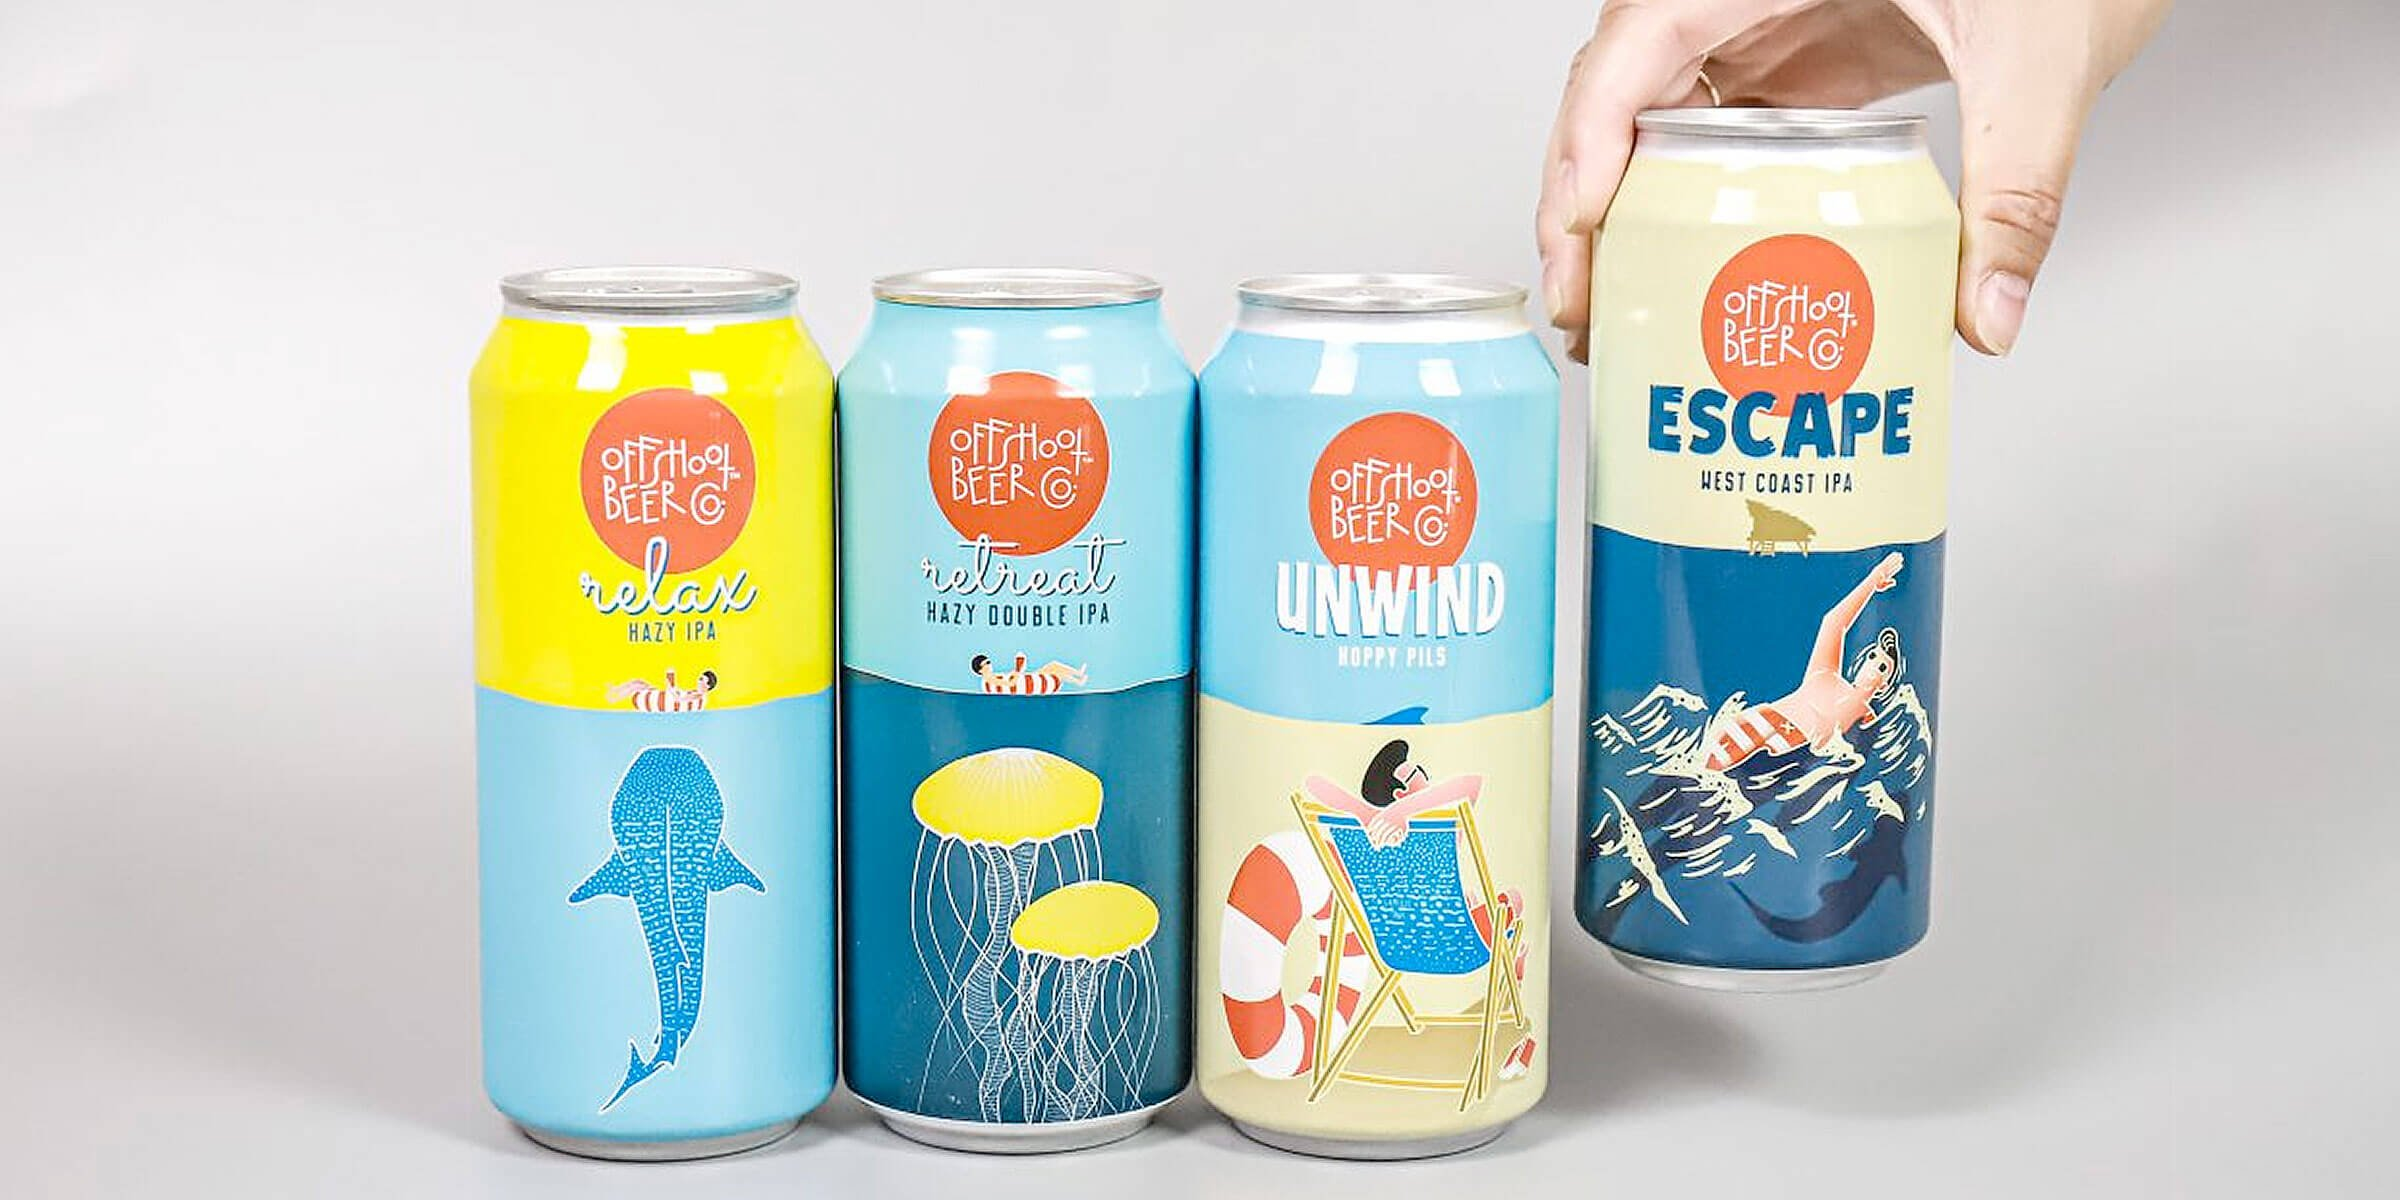 A lineup of canned beers including Relax, Retreat, Unwind, and Escape offered by Offshoot Beer Co.